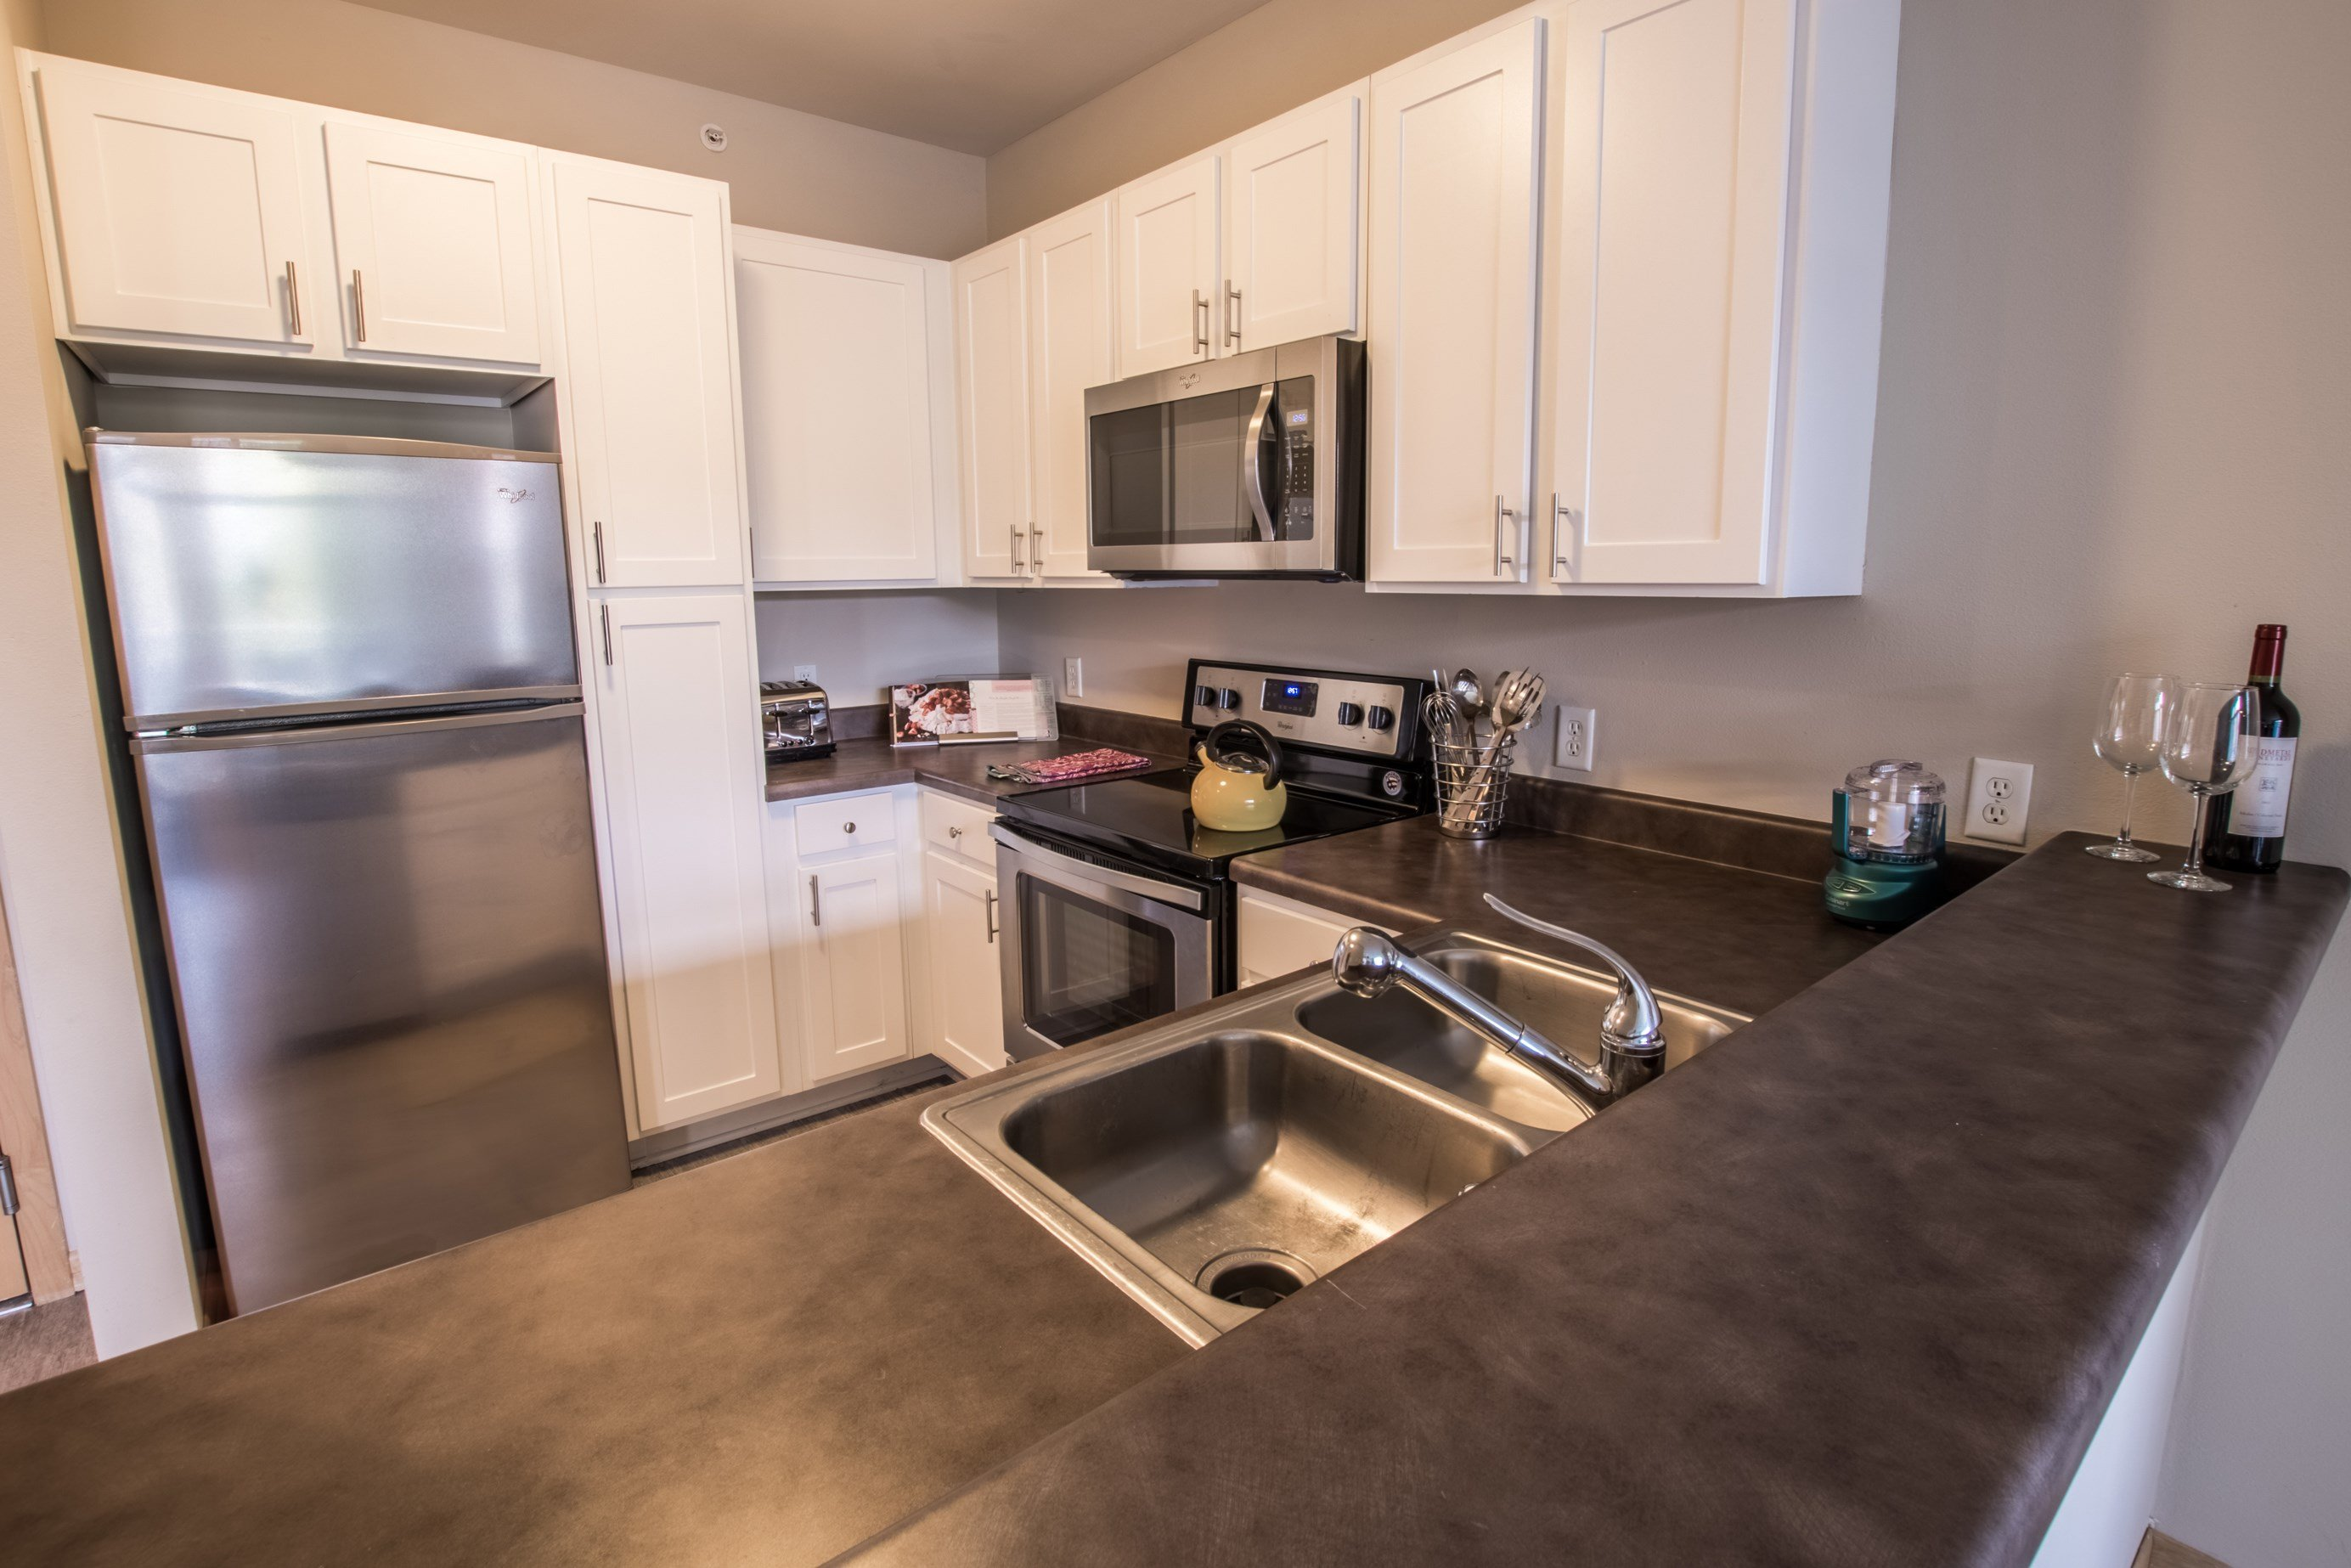 Kitchen at Trostel Square Apartments in Milwaukee, WI